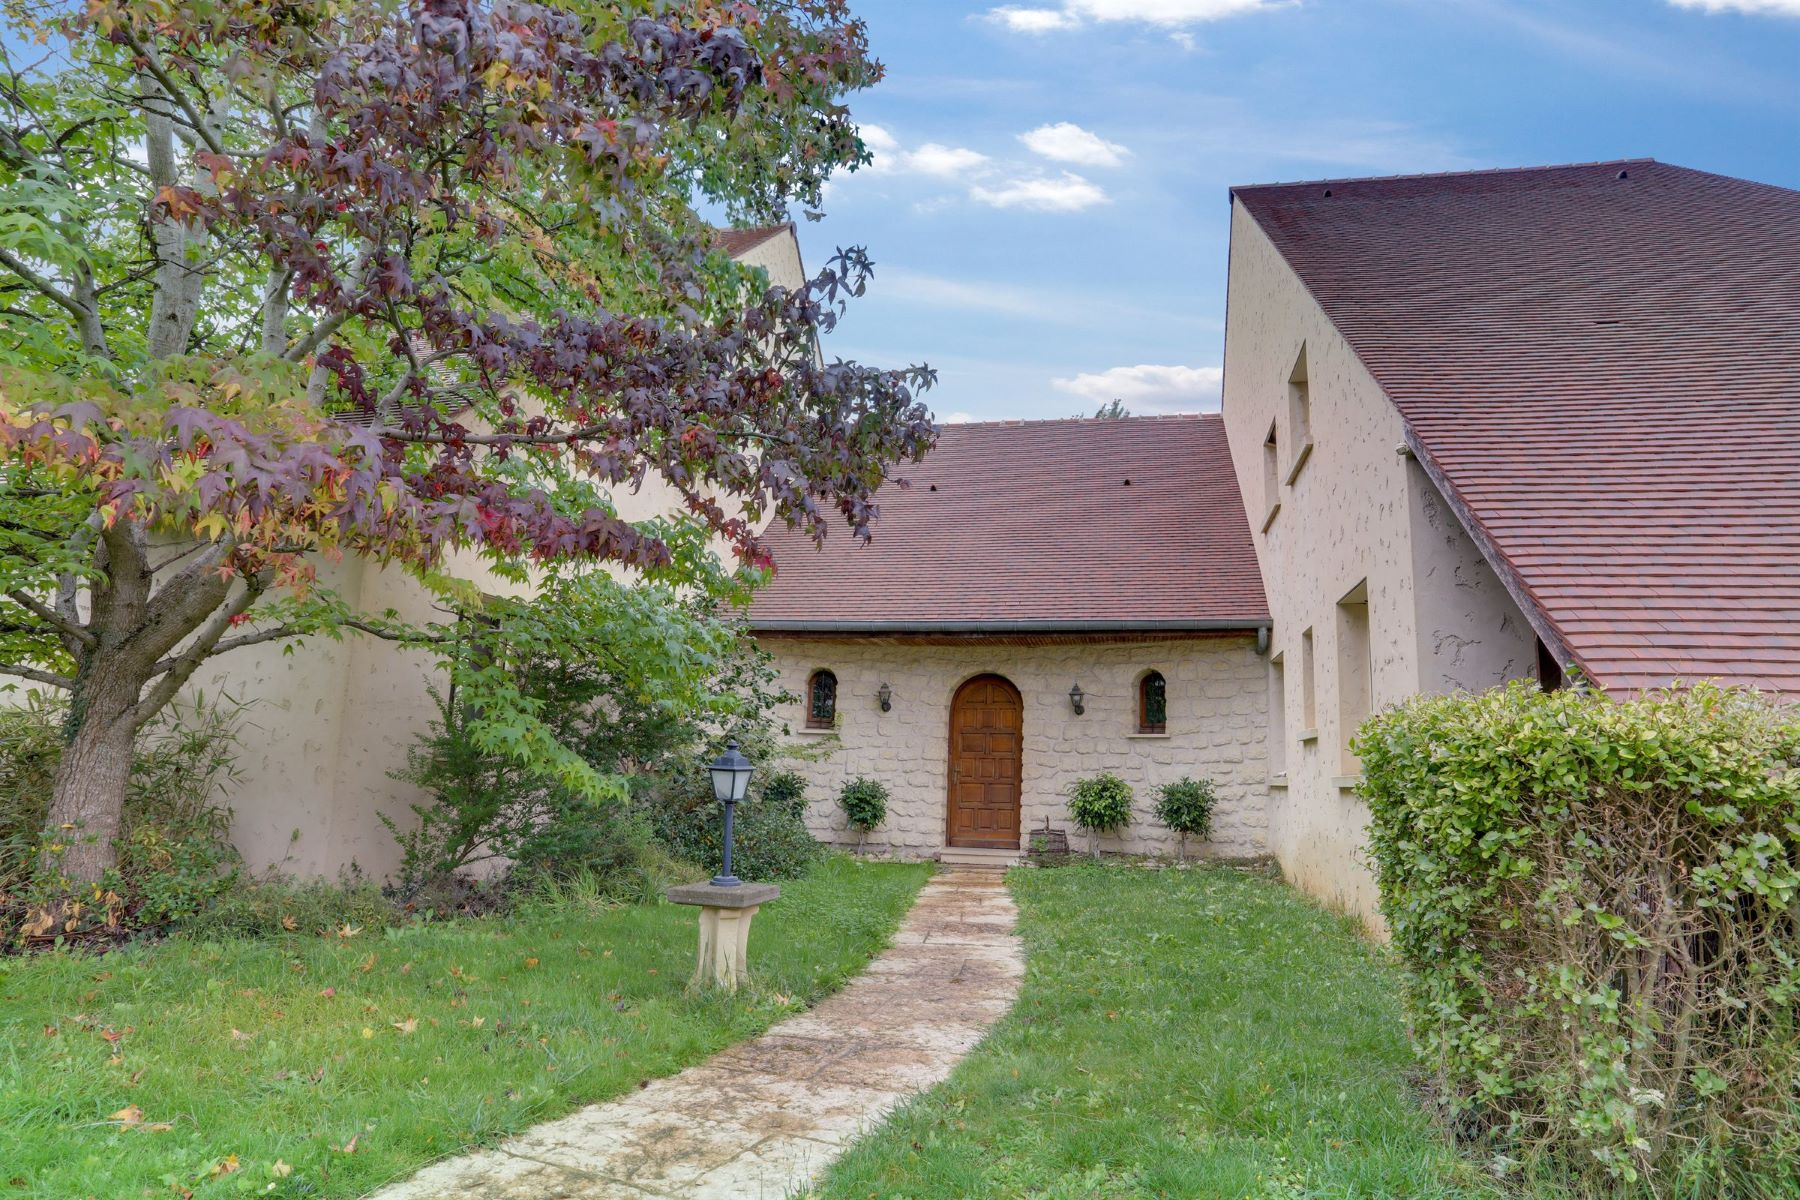 Single Family Homes for Active at Contemporary mansion in Chennevières-sur-Marne Chennevieres Sur Marne, Ile-De-France 94430 France